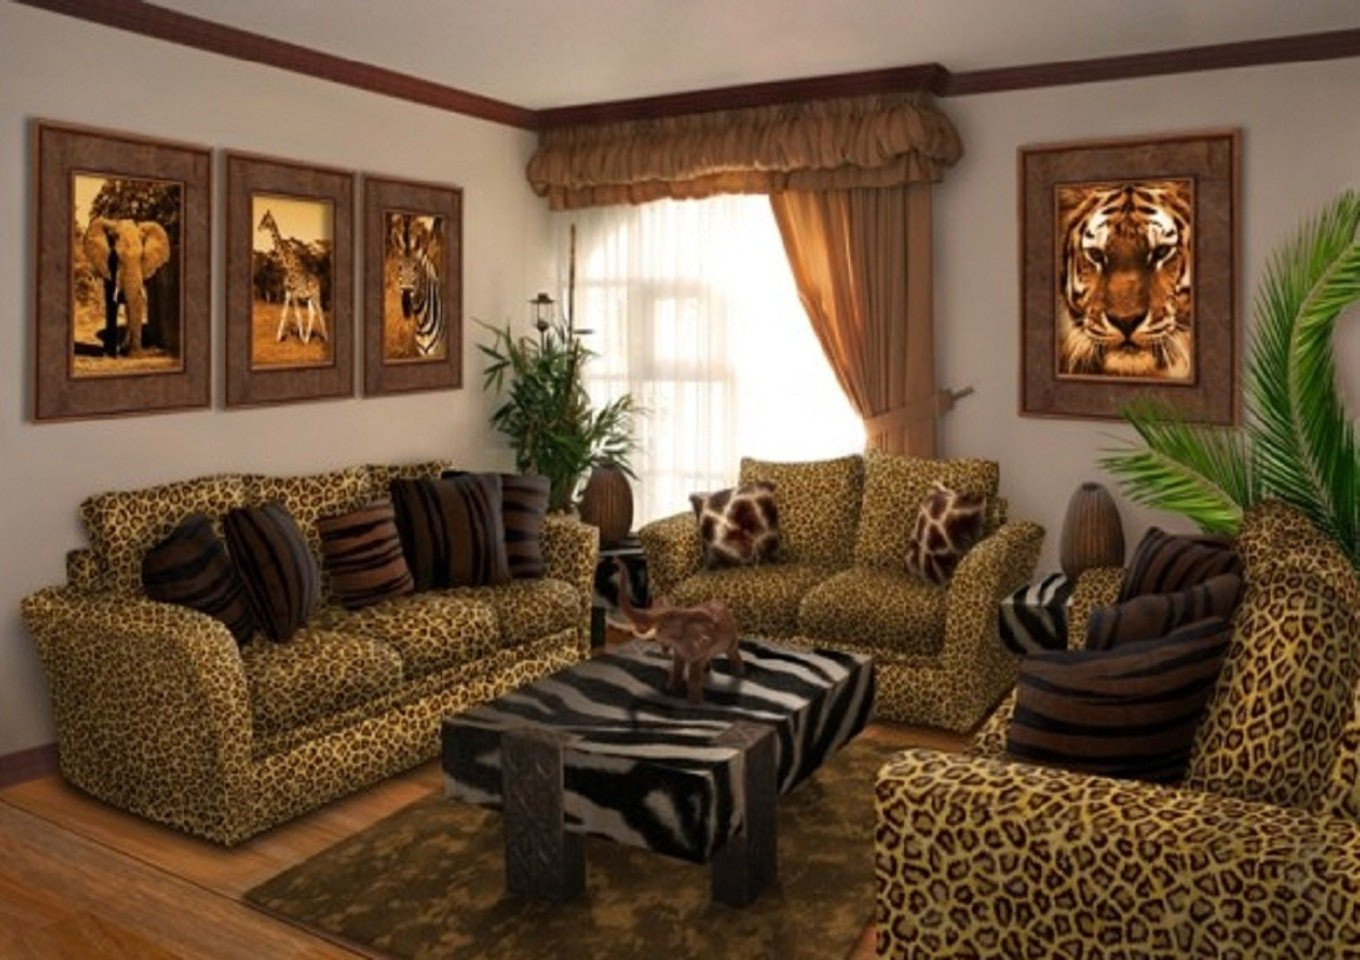 Leopard Decor for Living Room Bathroom Decoration 1765 Best Cozy Very Small Decorating